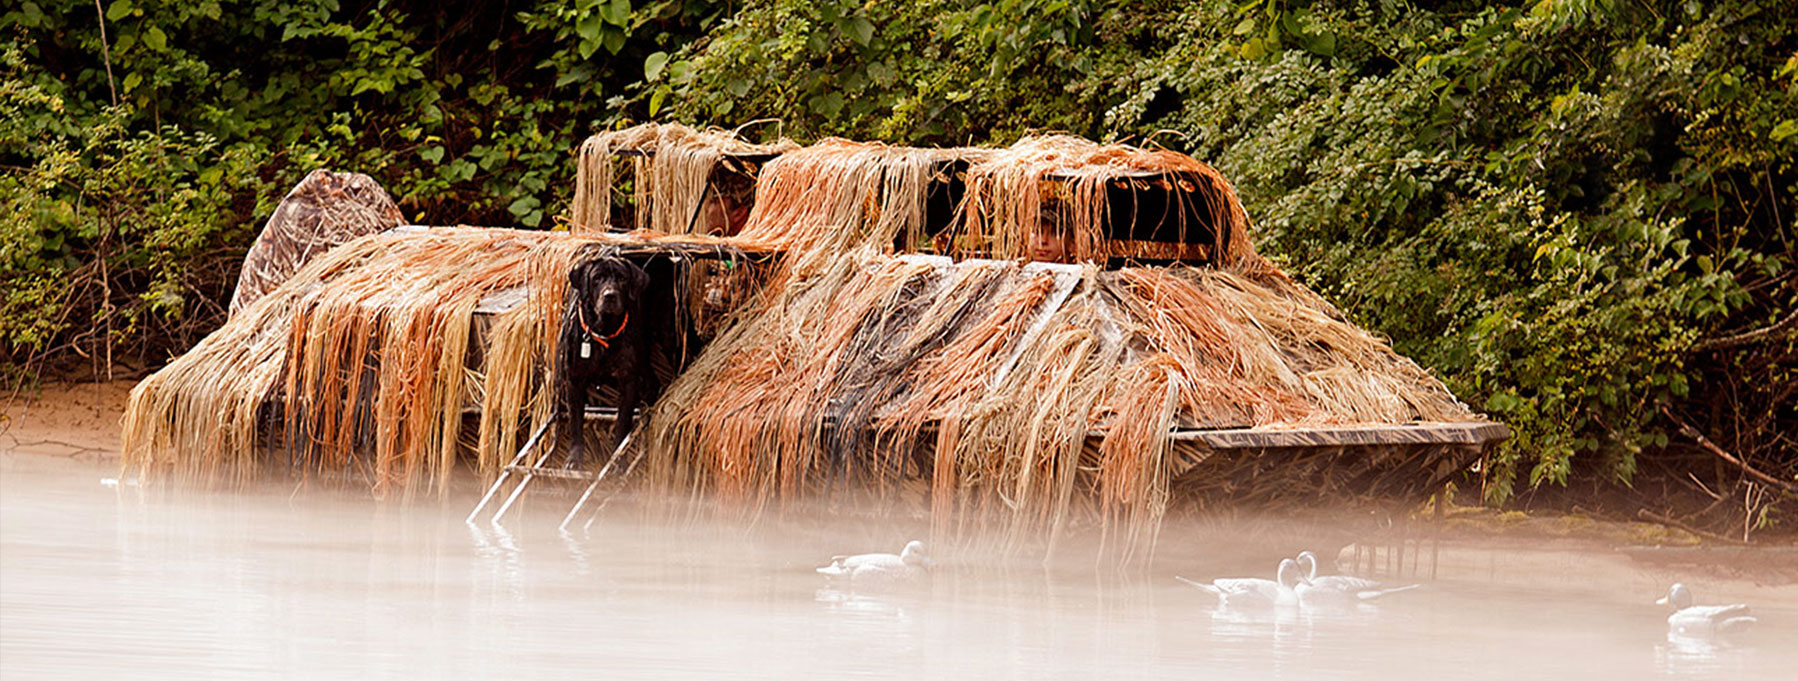 chat motors boat layout canoe viewtopic as waterfowl image boats forum a duck blinds blind hunting